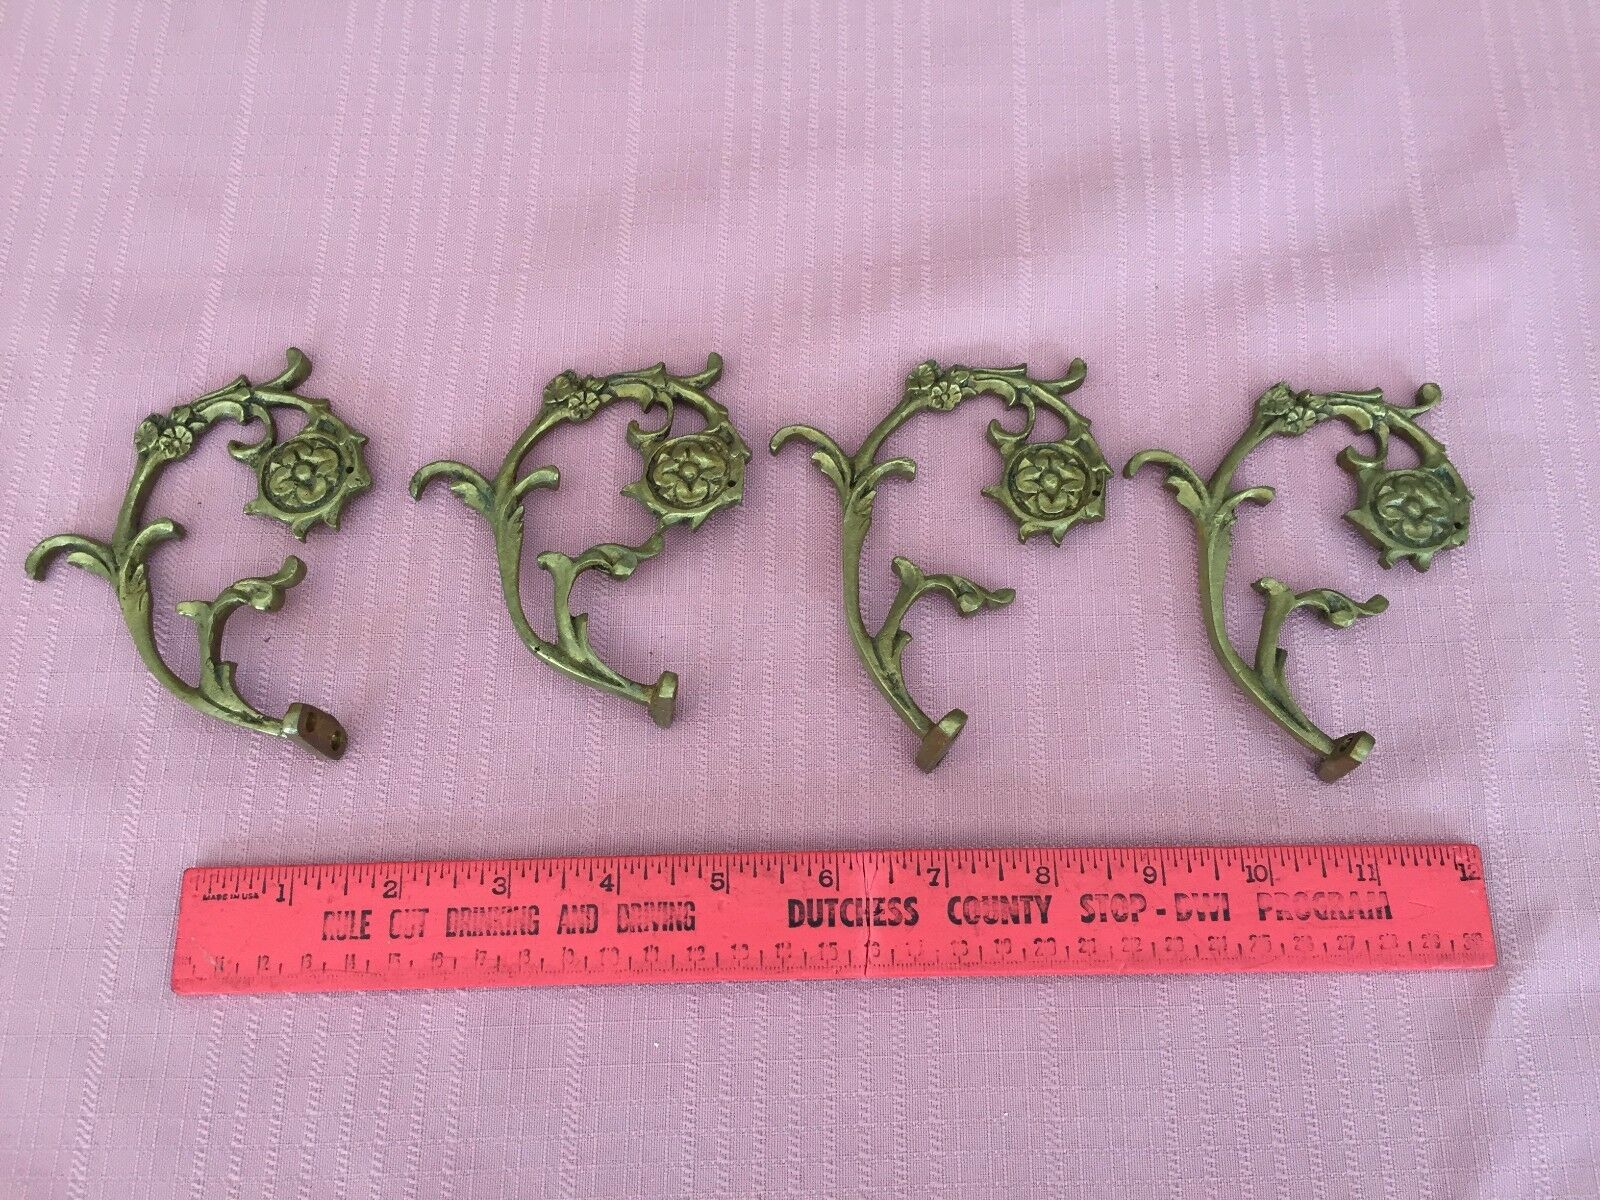 Vintage Lot of 4 Brass Chandelier Arms Ornate Scroll Part Rosettes holes to hang